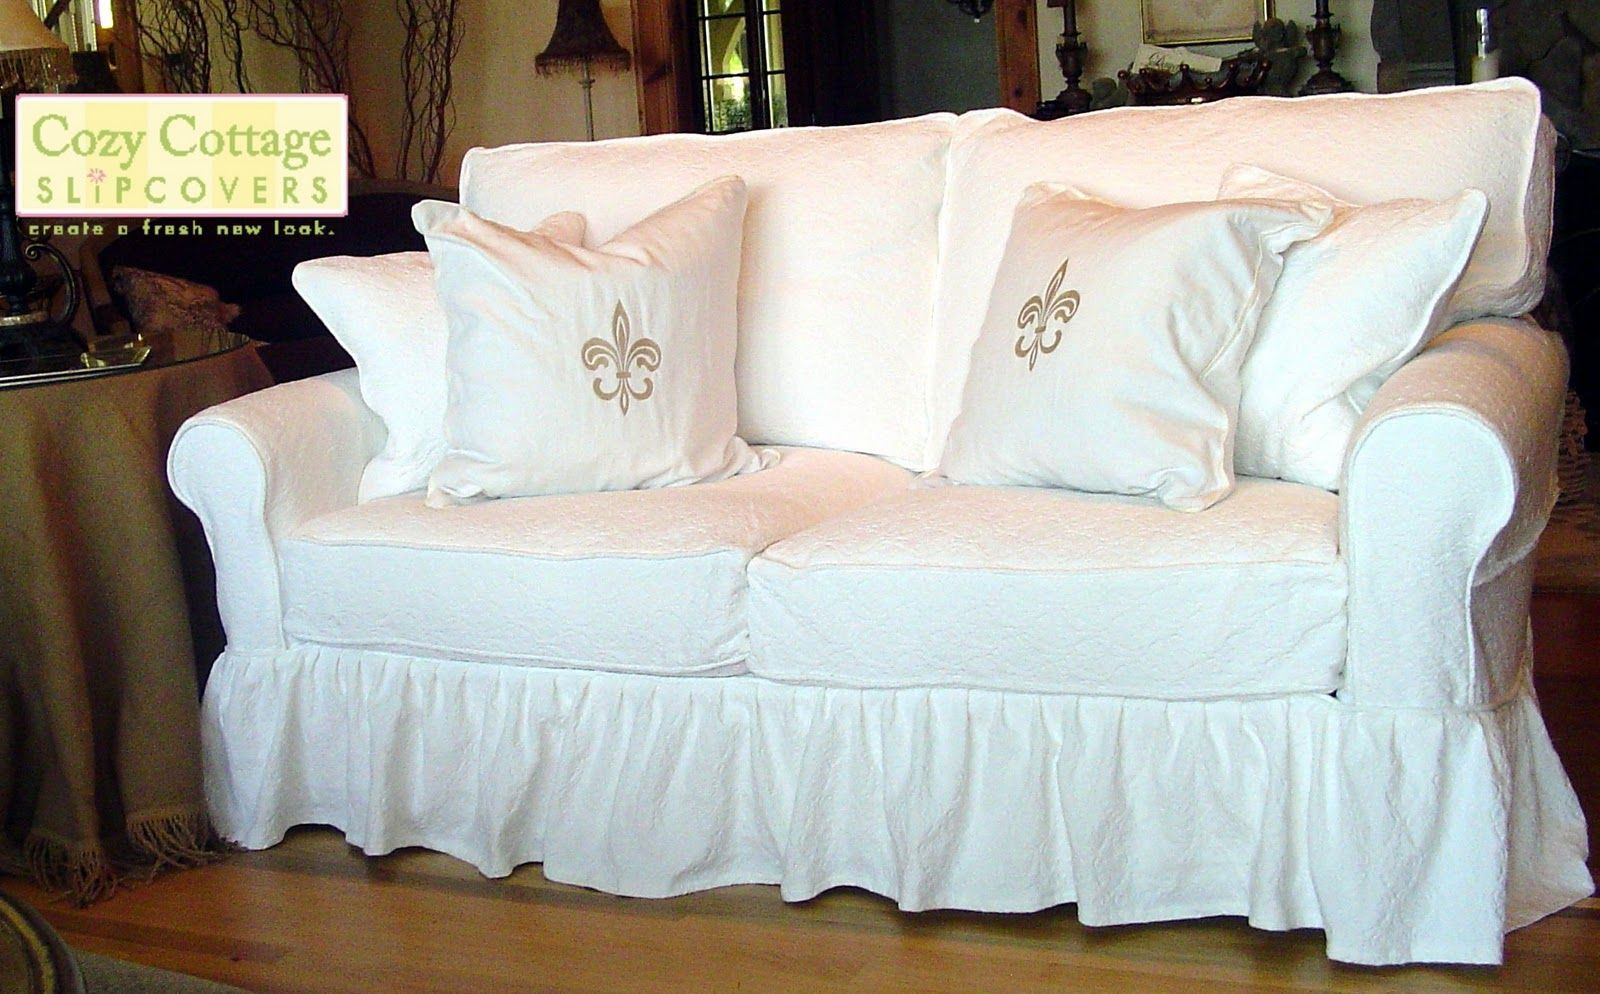 1000+ images about Sweet Slipcovers on Pinterest | Slipcovers ...